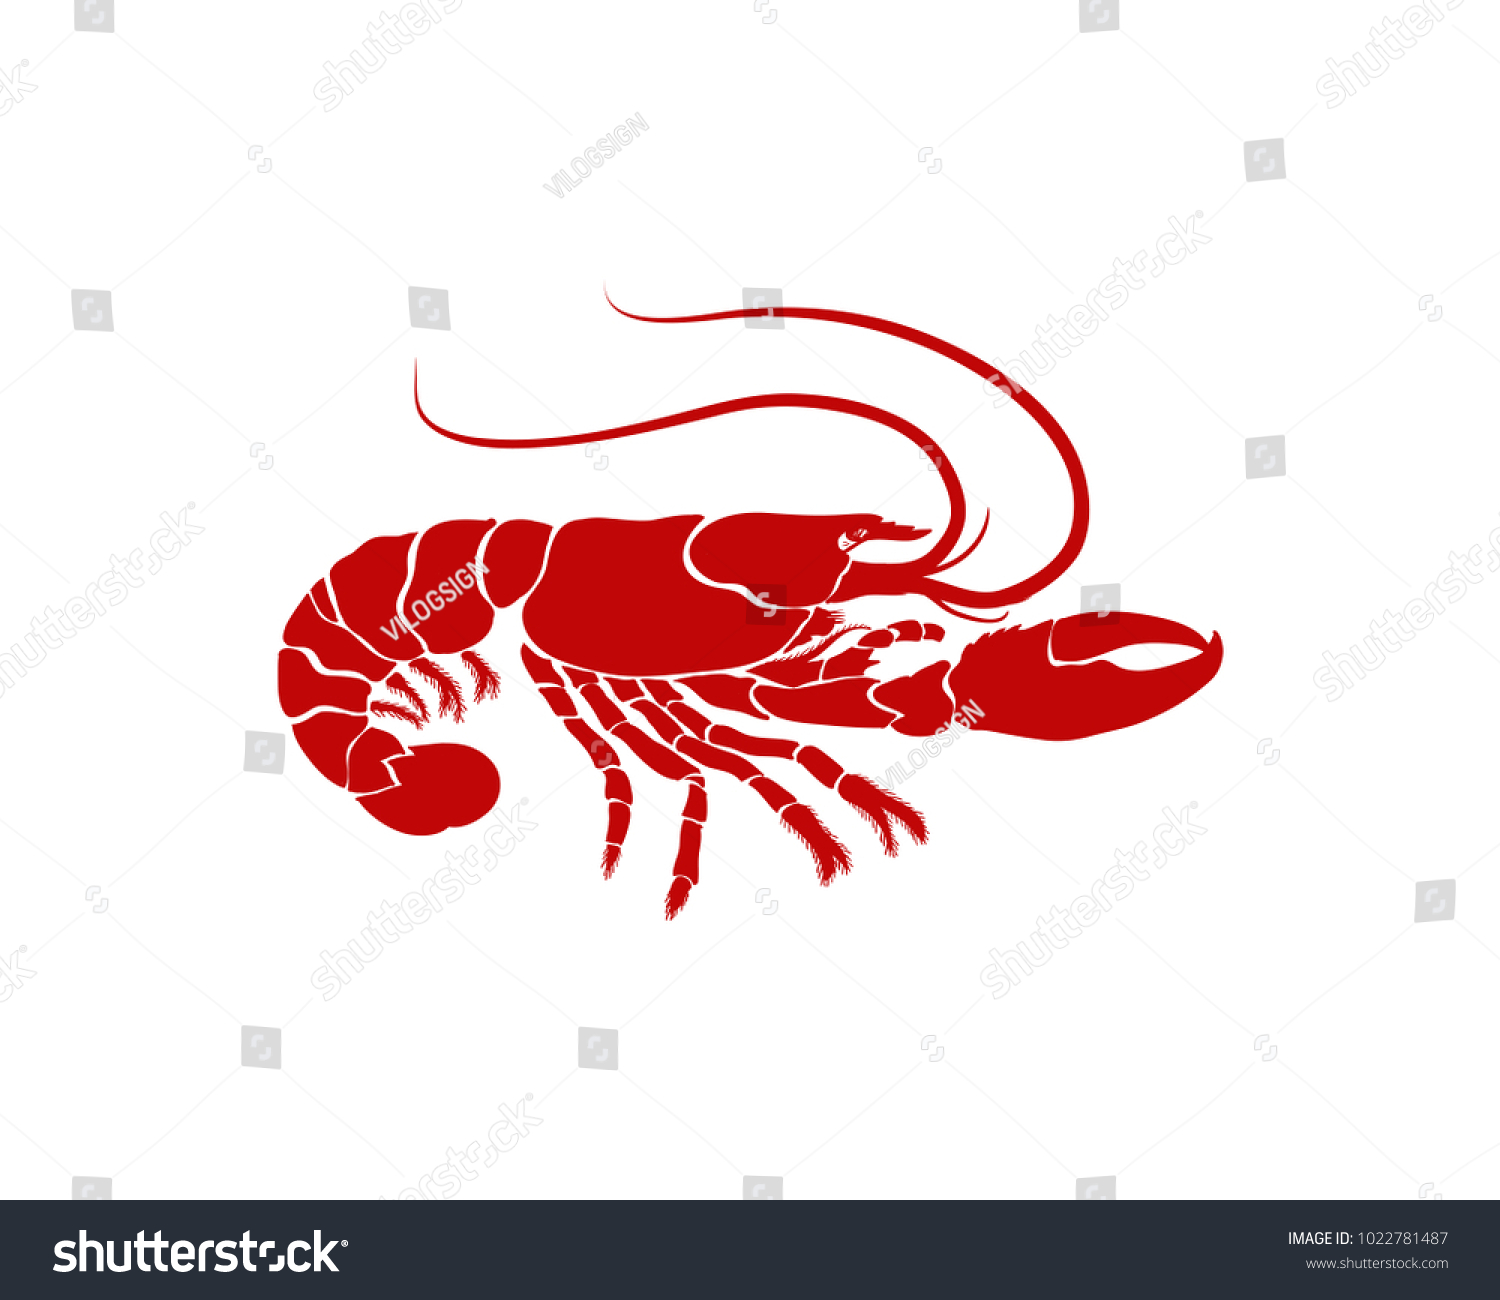 Cooking Seafood Red Lobster Restaurant Illustration Stock Vector Hd